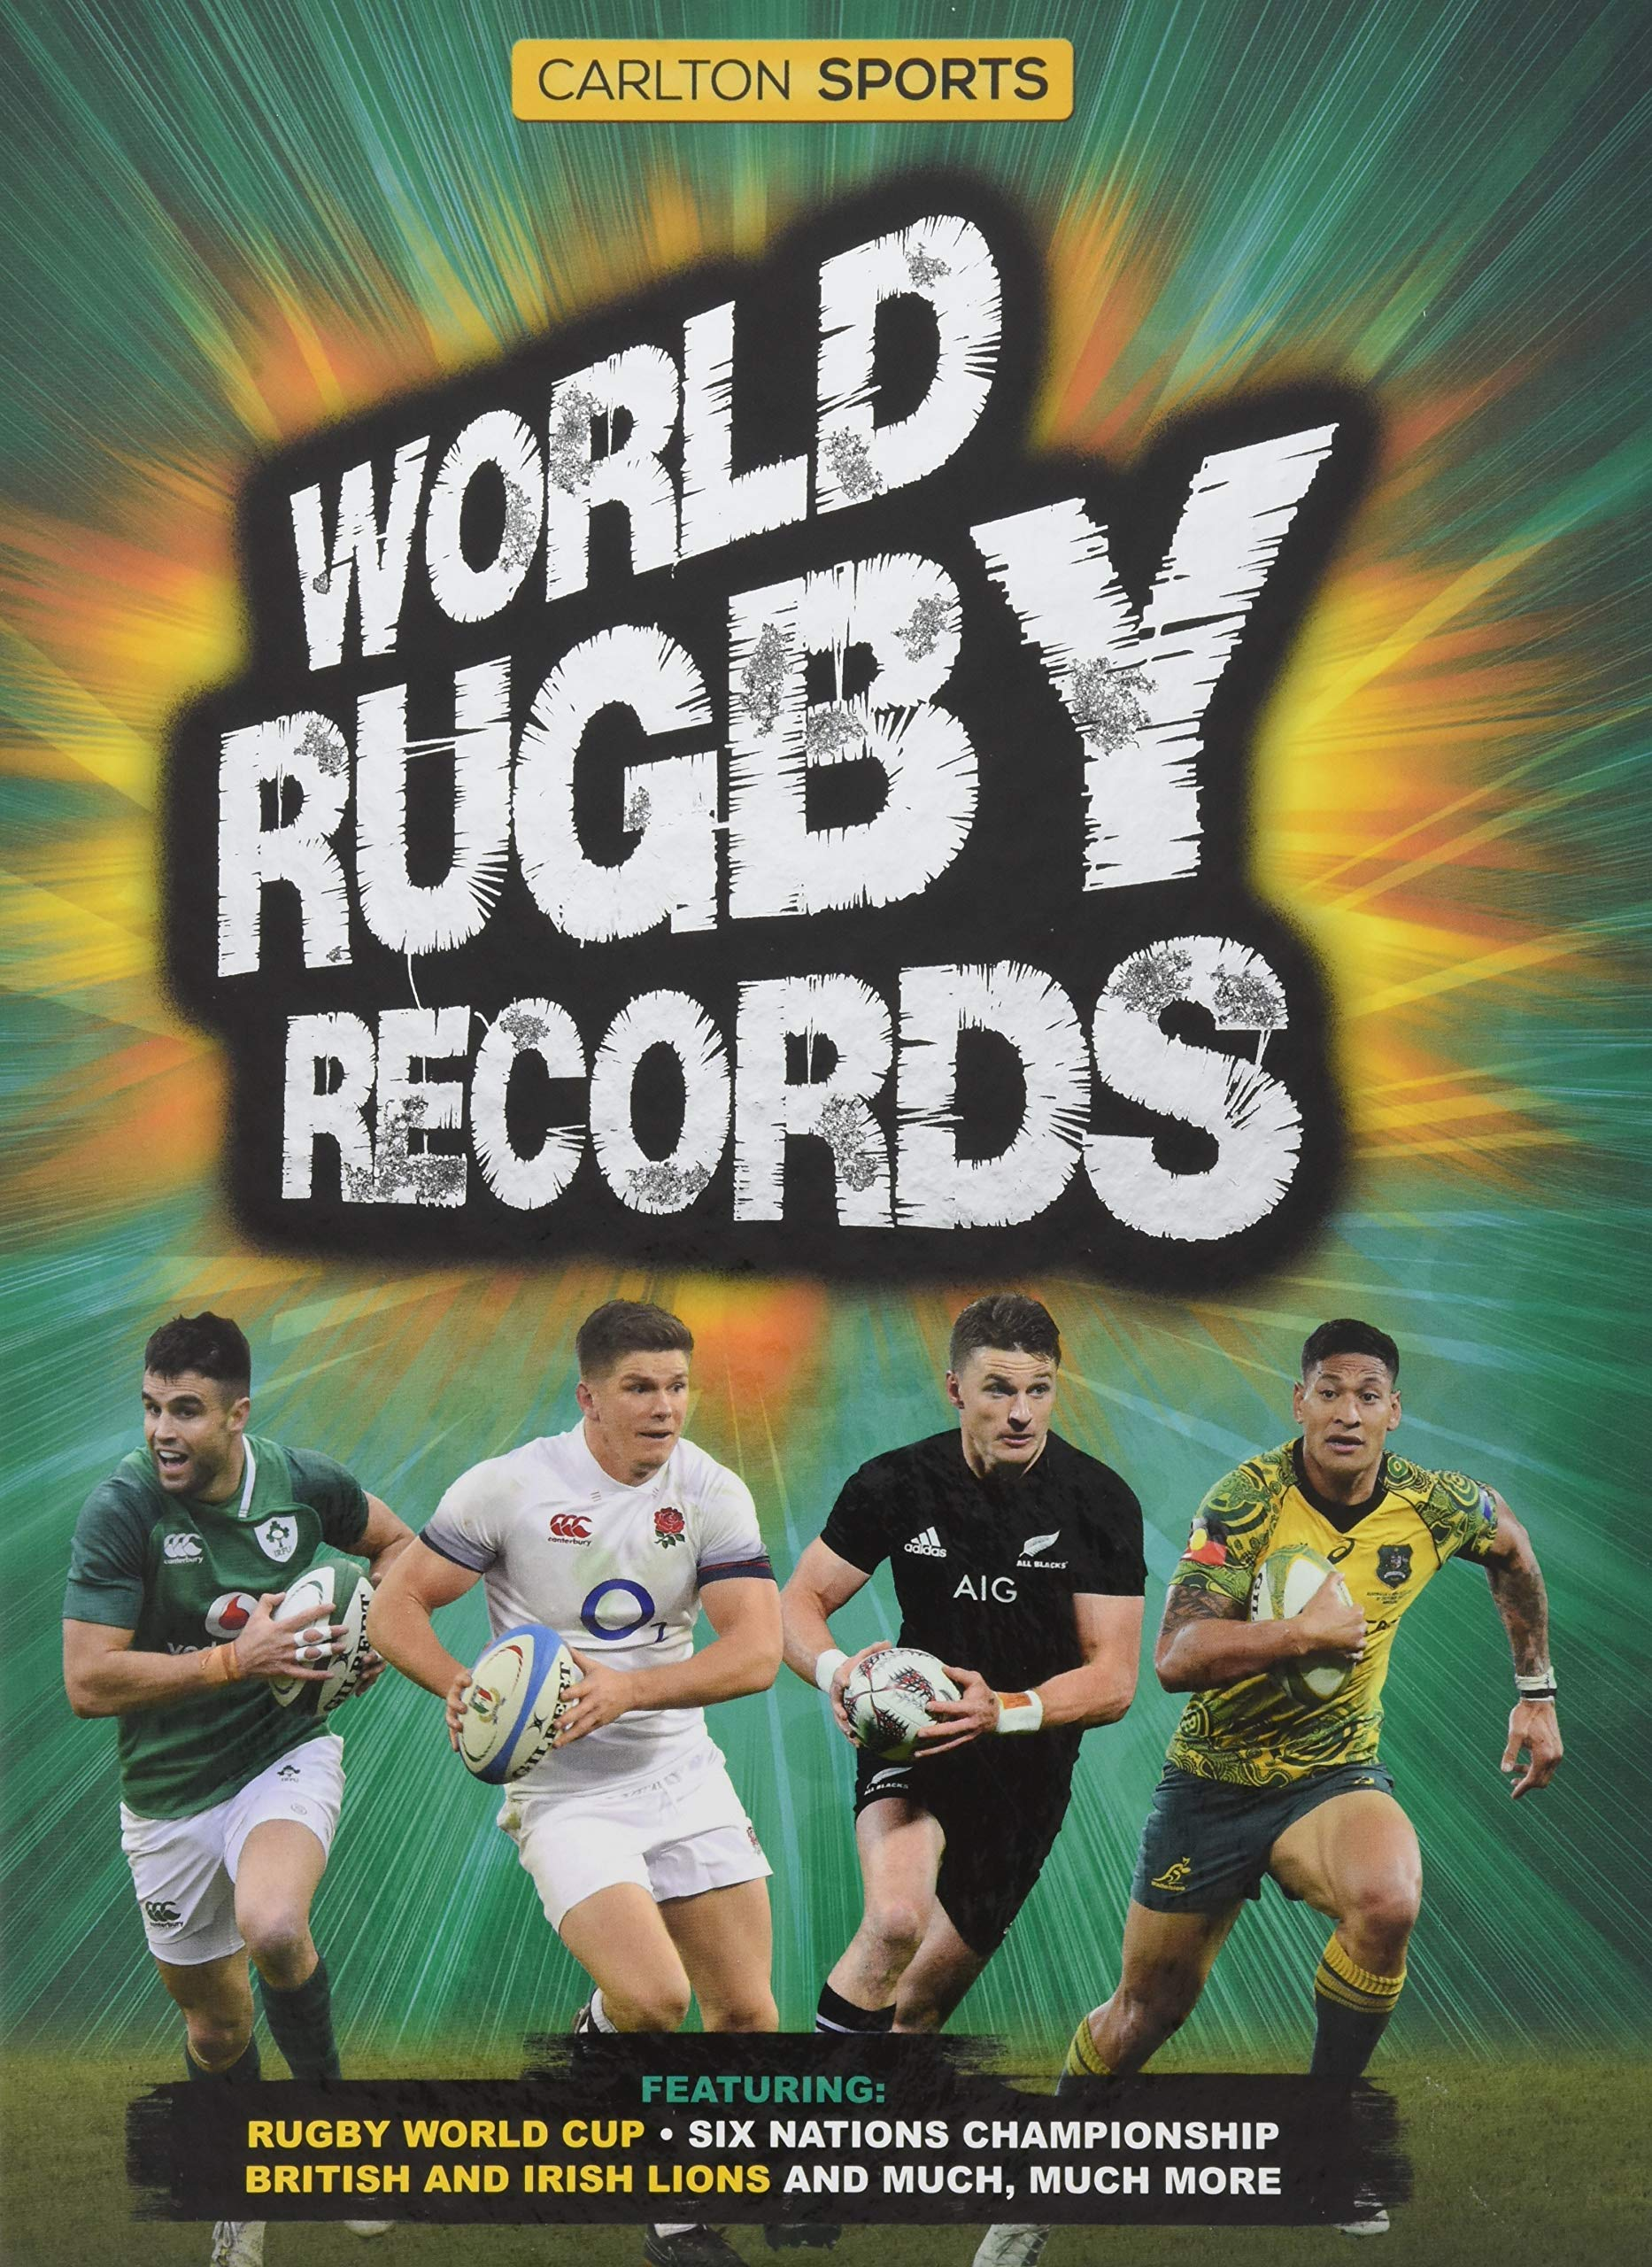 World Rugby Records by Carlton Publishing Group